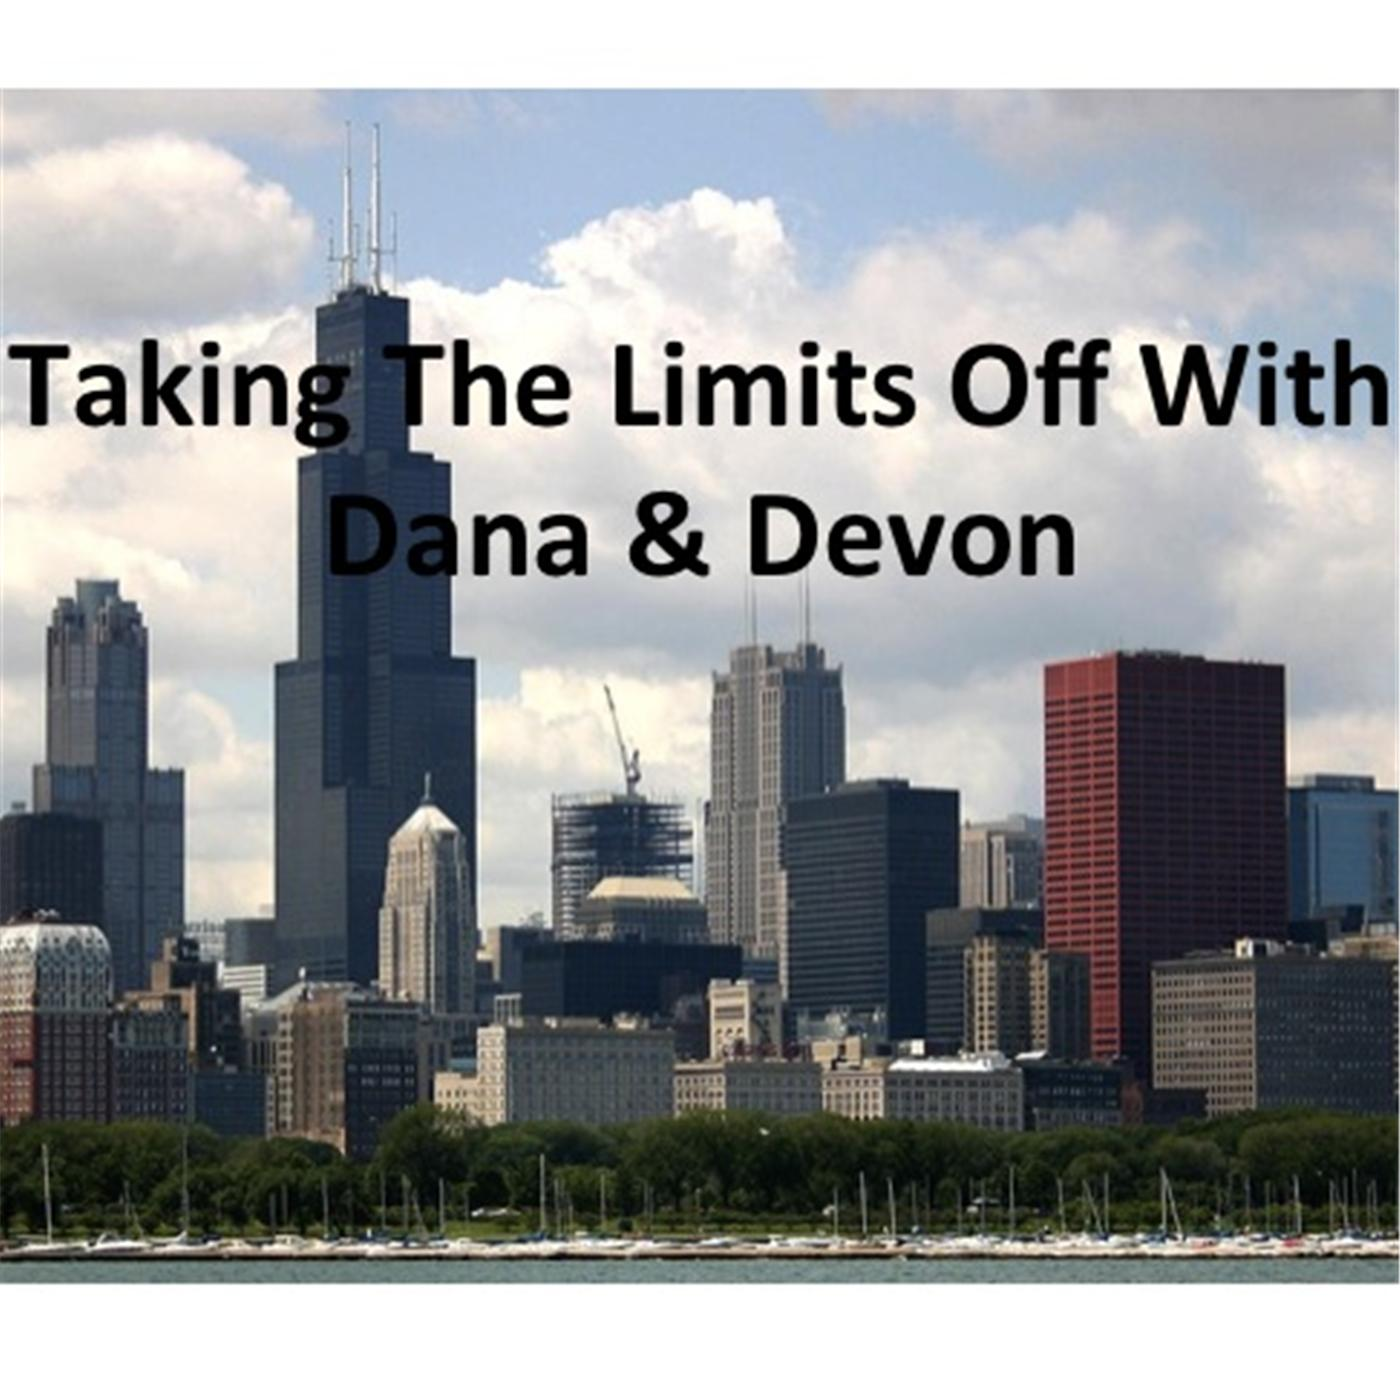 Taking The Limits Off W/ Dana & Devon